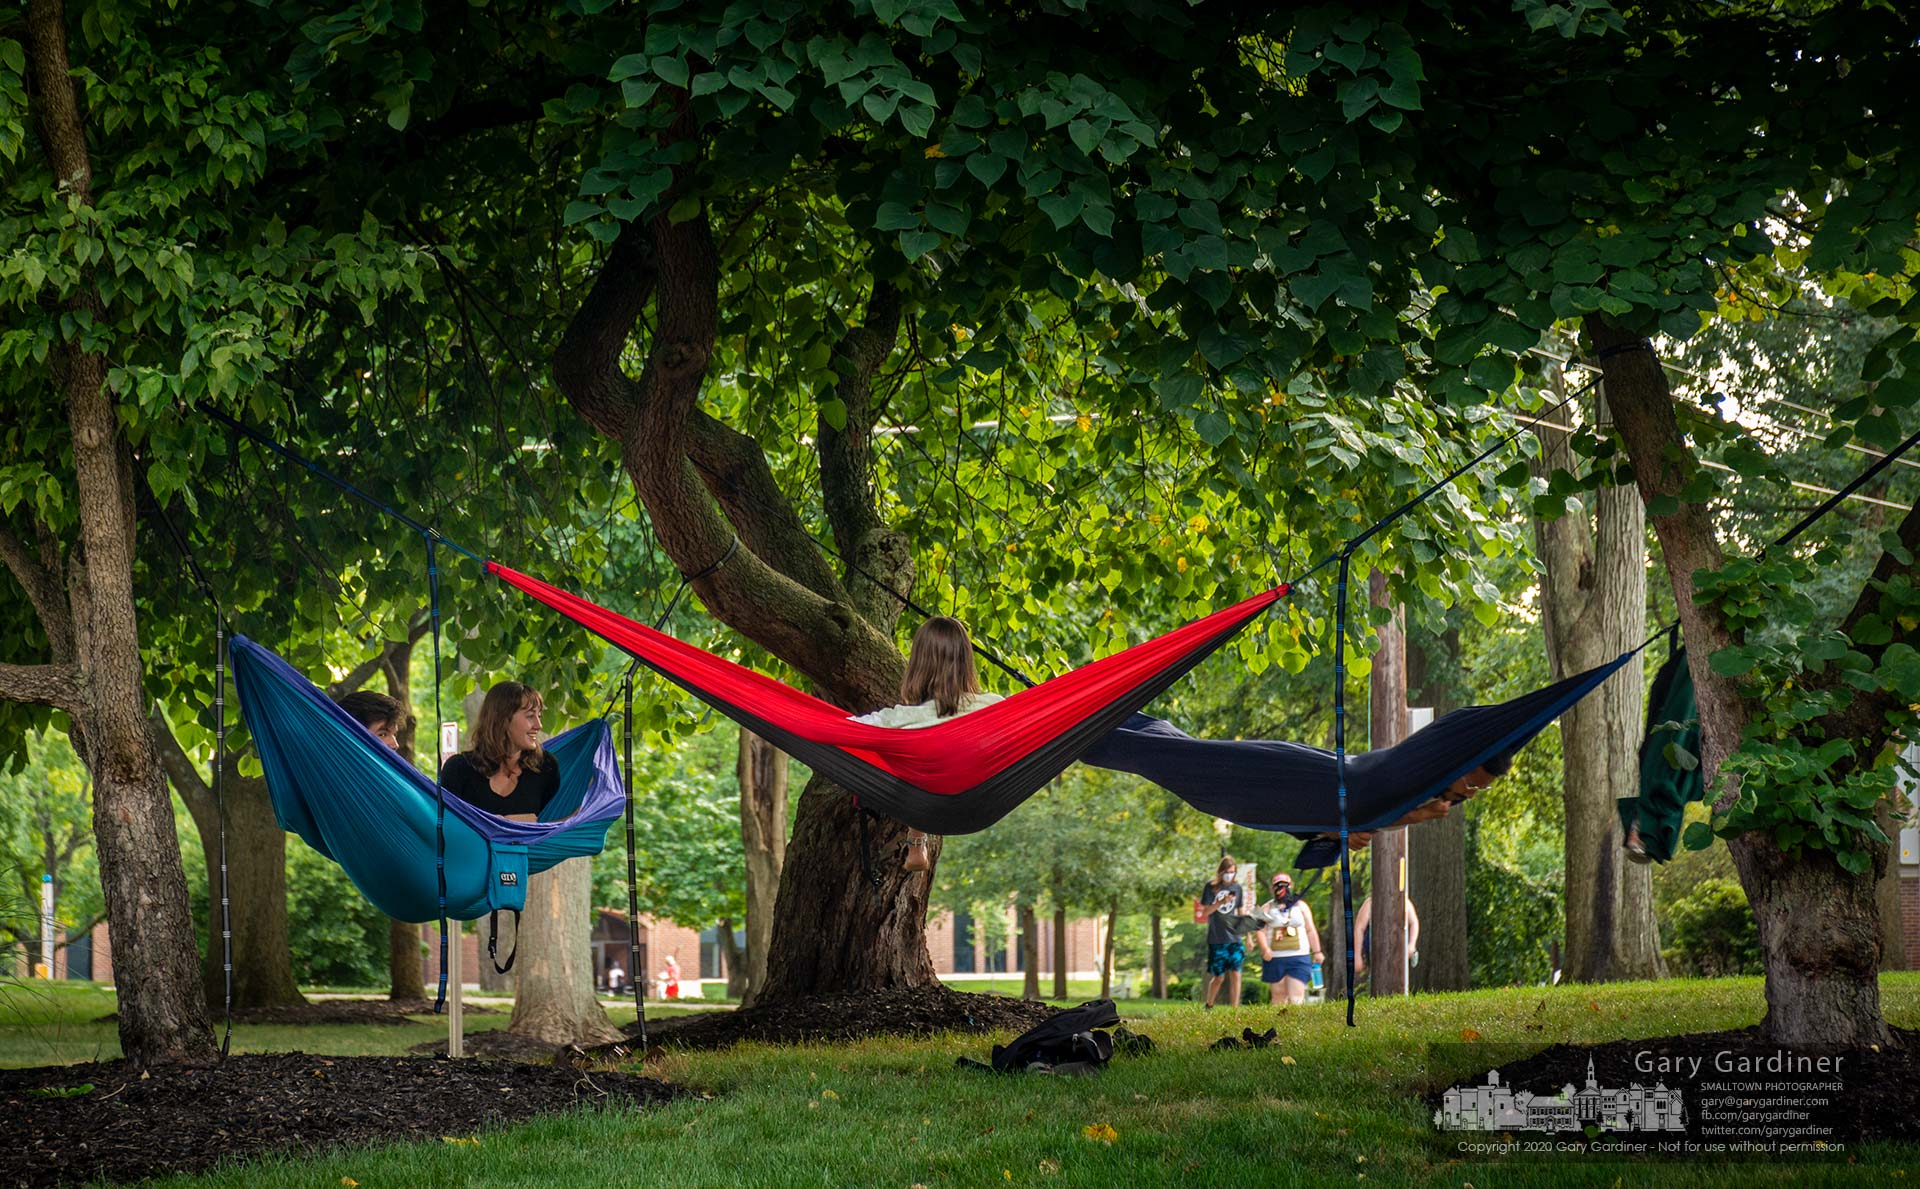 Four Otterbein University seniors spend Tuesday afternoon relaxing in their hammocks at Grove and Main waiting for classes to begin next week. My Final Photo for Aug. 17, 2020.